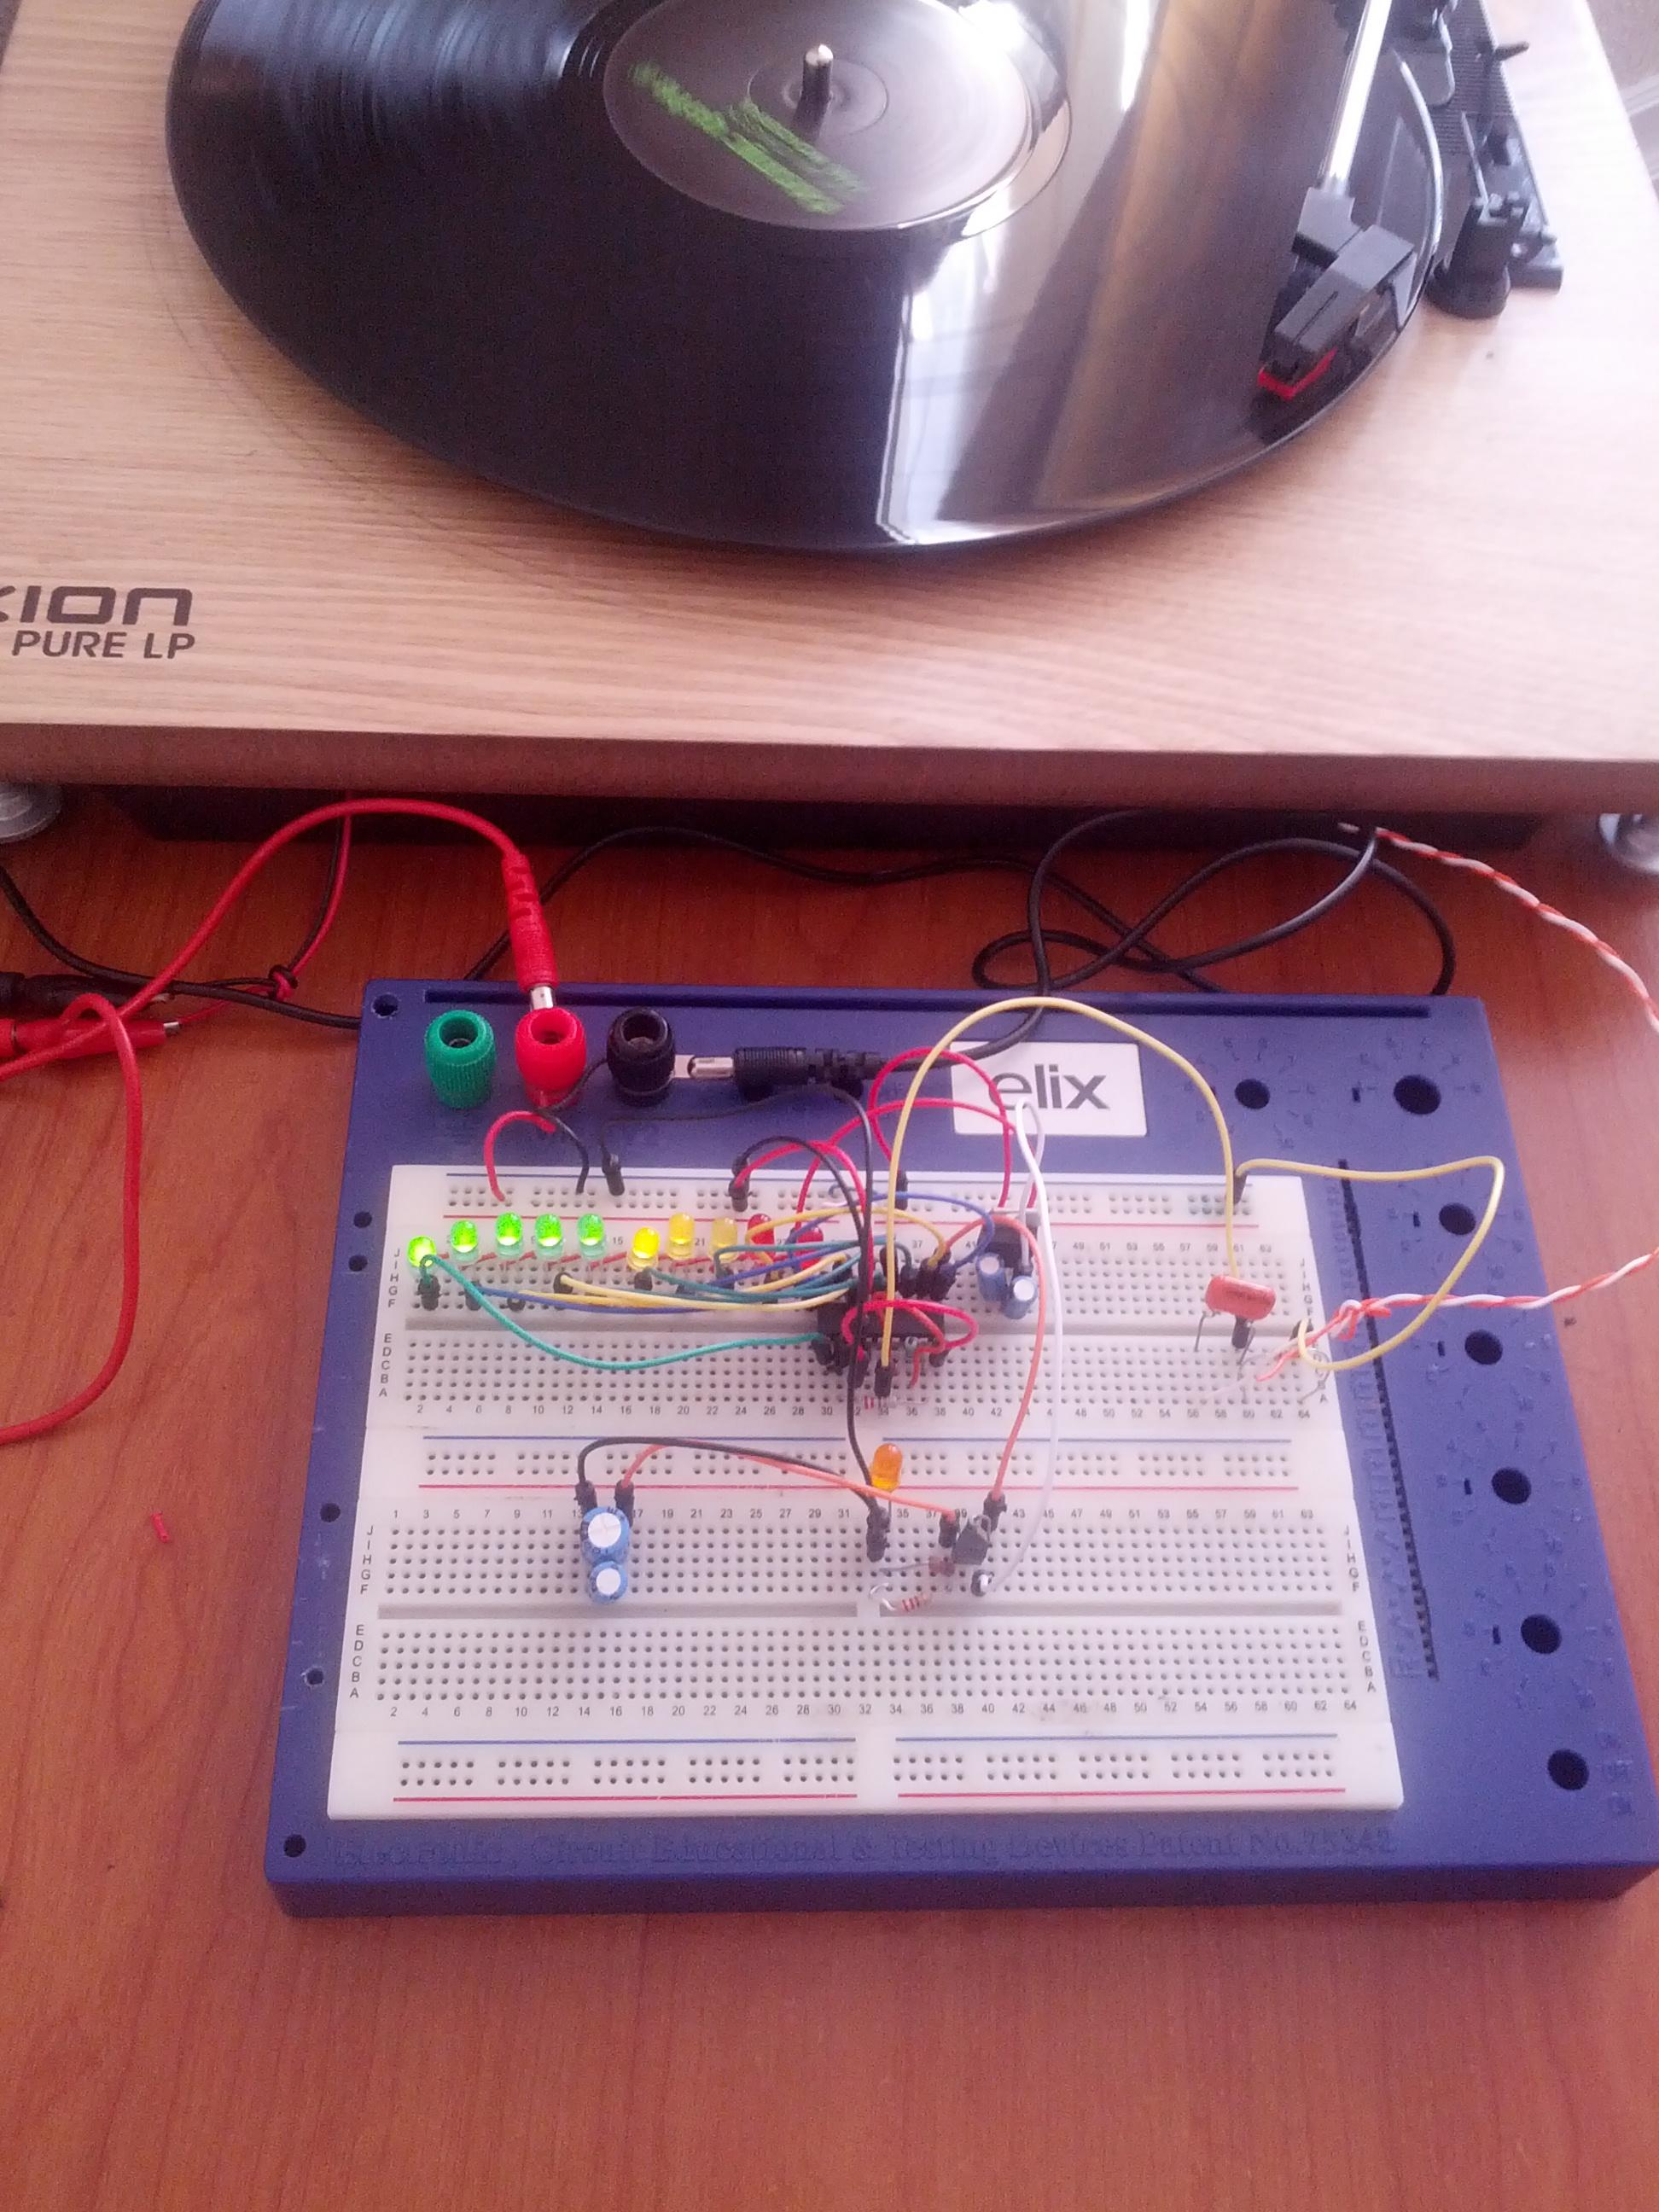 Adding Stereo Vu Meters To A Turntable Michael Duerinckx Lm3915 Meter Circuit Filter I Playing Record Connected Breadboard With Some New Additions